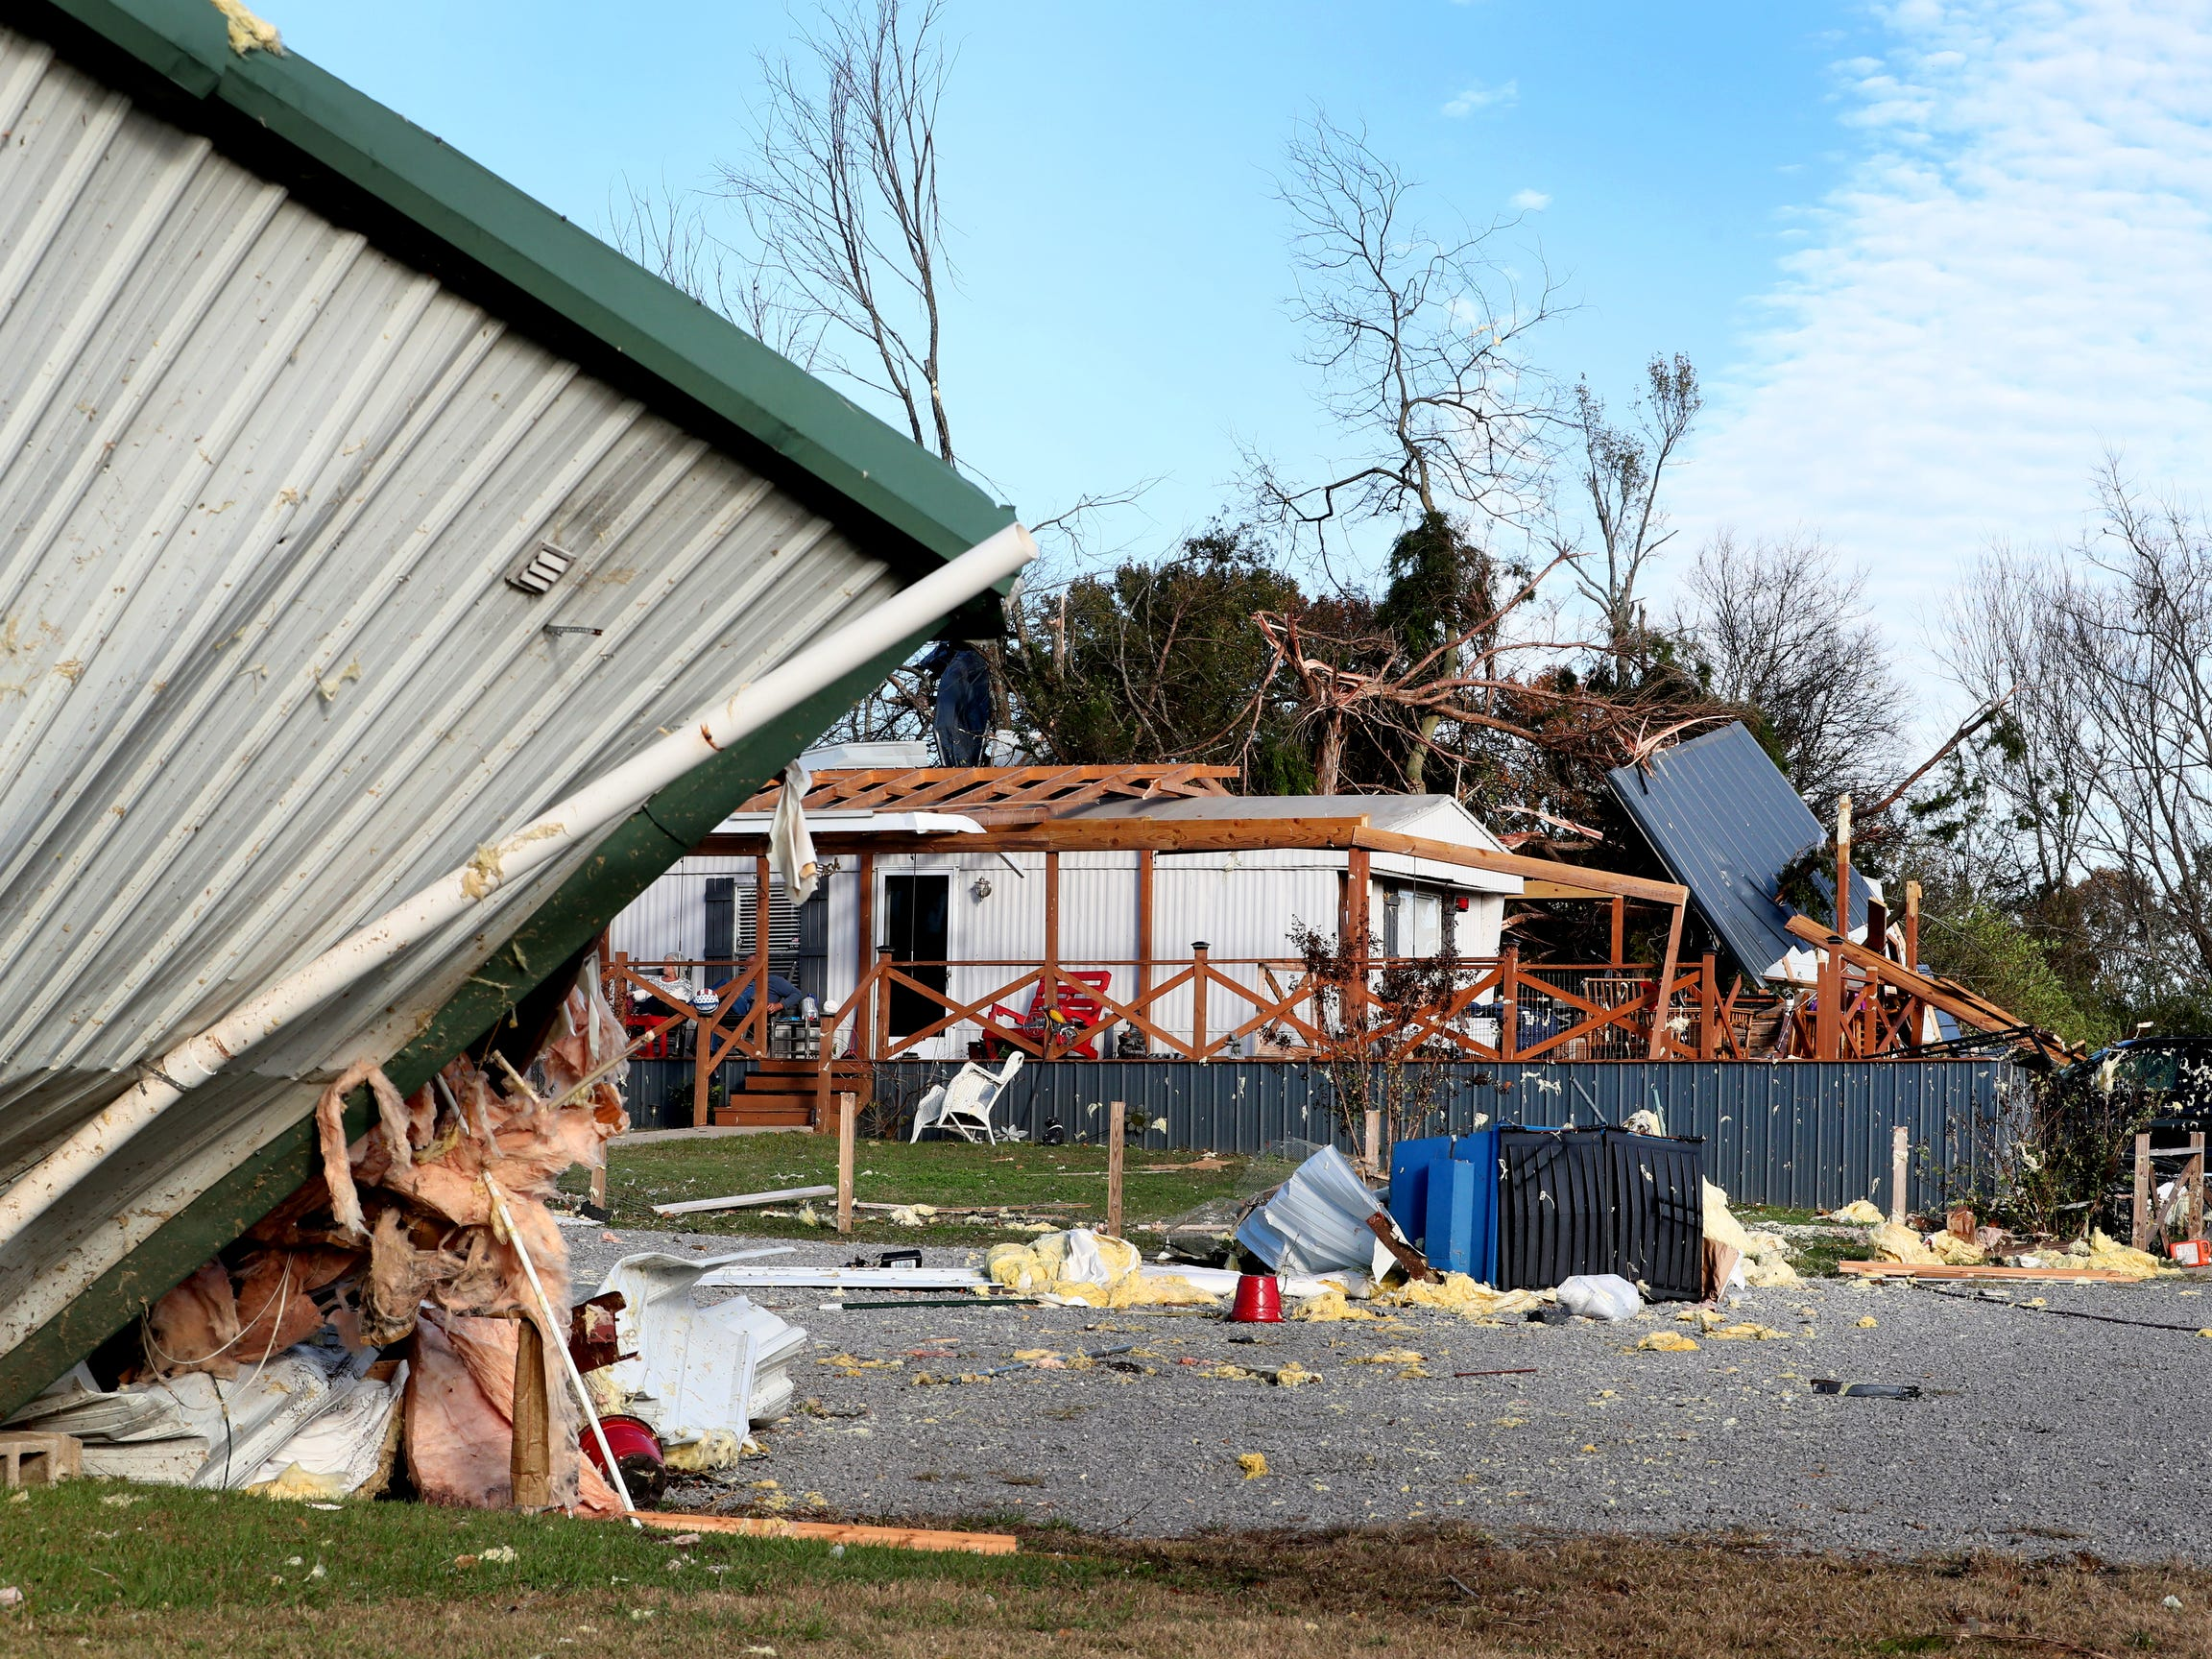 Tornado damage can be seen to the the home and work shed of Hank and Ava Jordan along Rock Springs Midland Road in Christiana, Tenn. on Tuesday, Nov. 6, 2018.